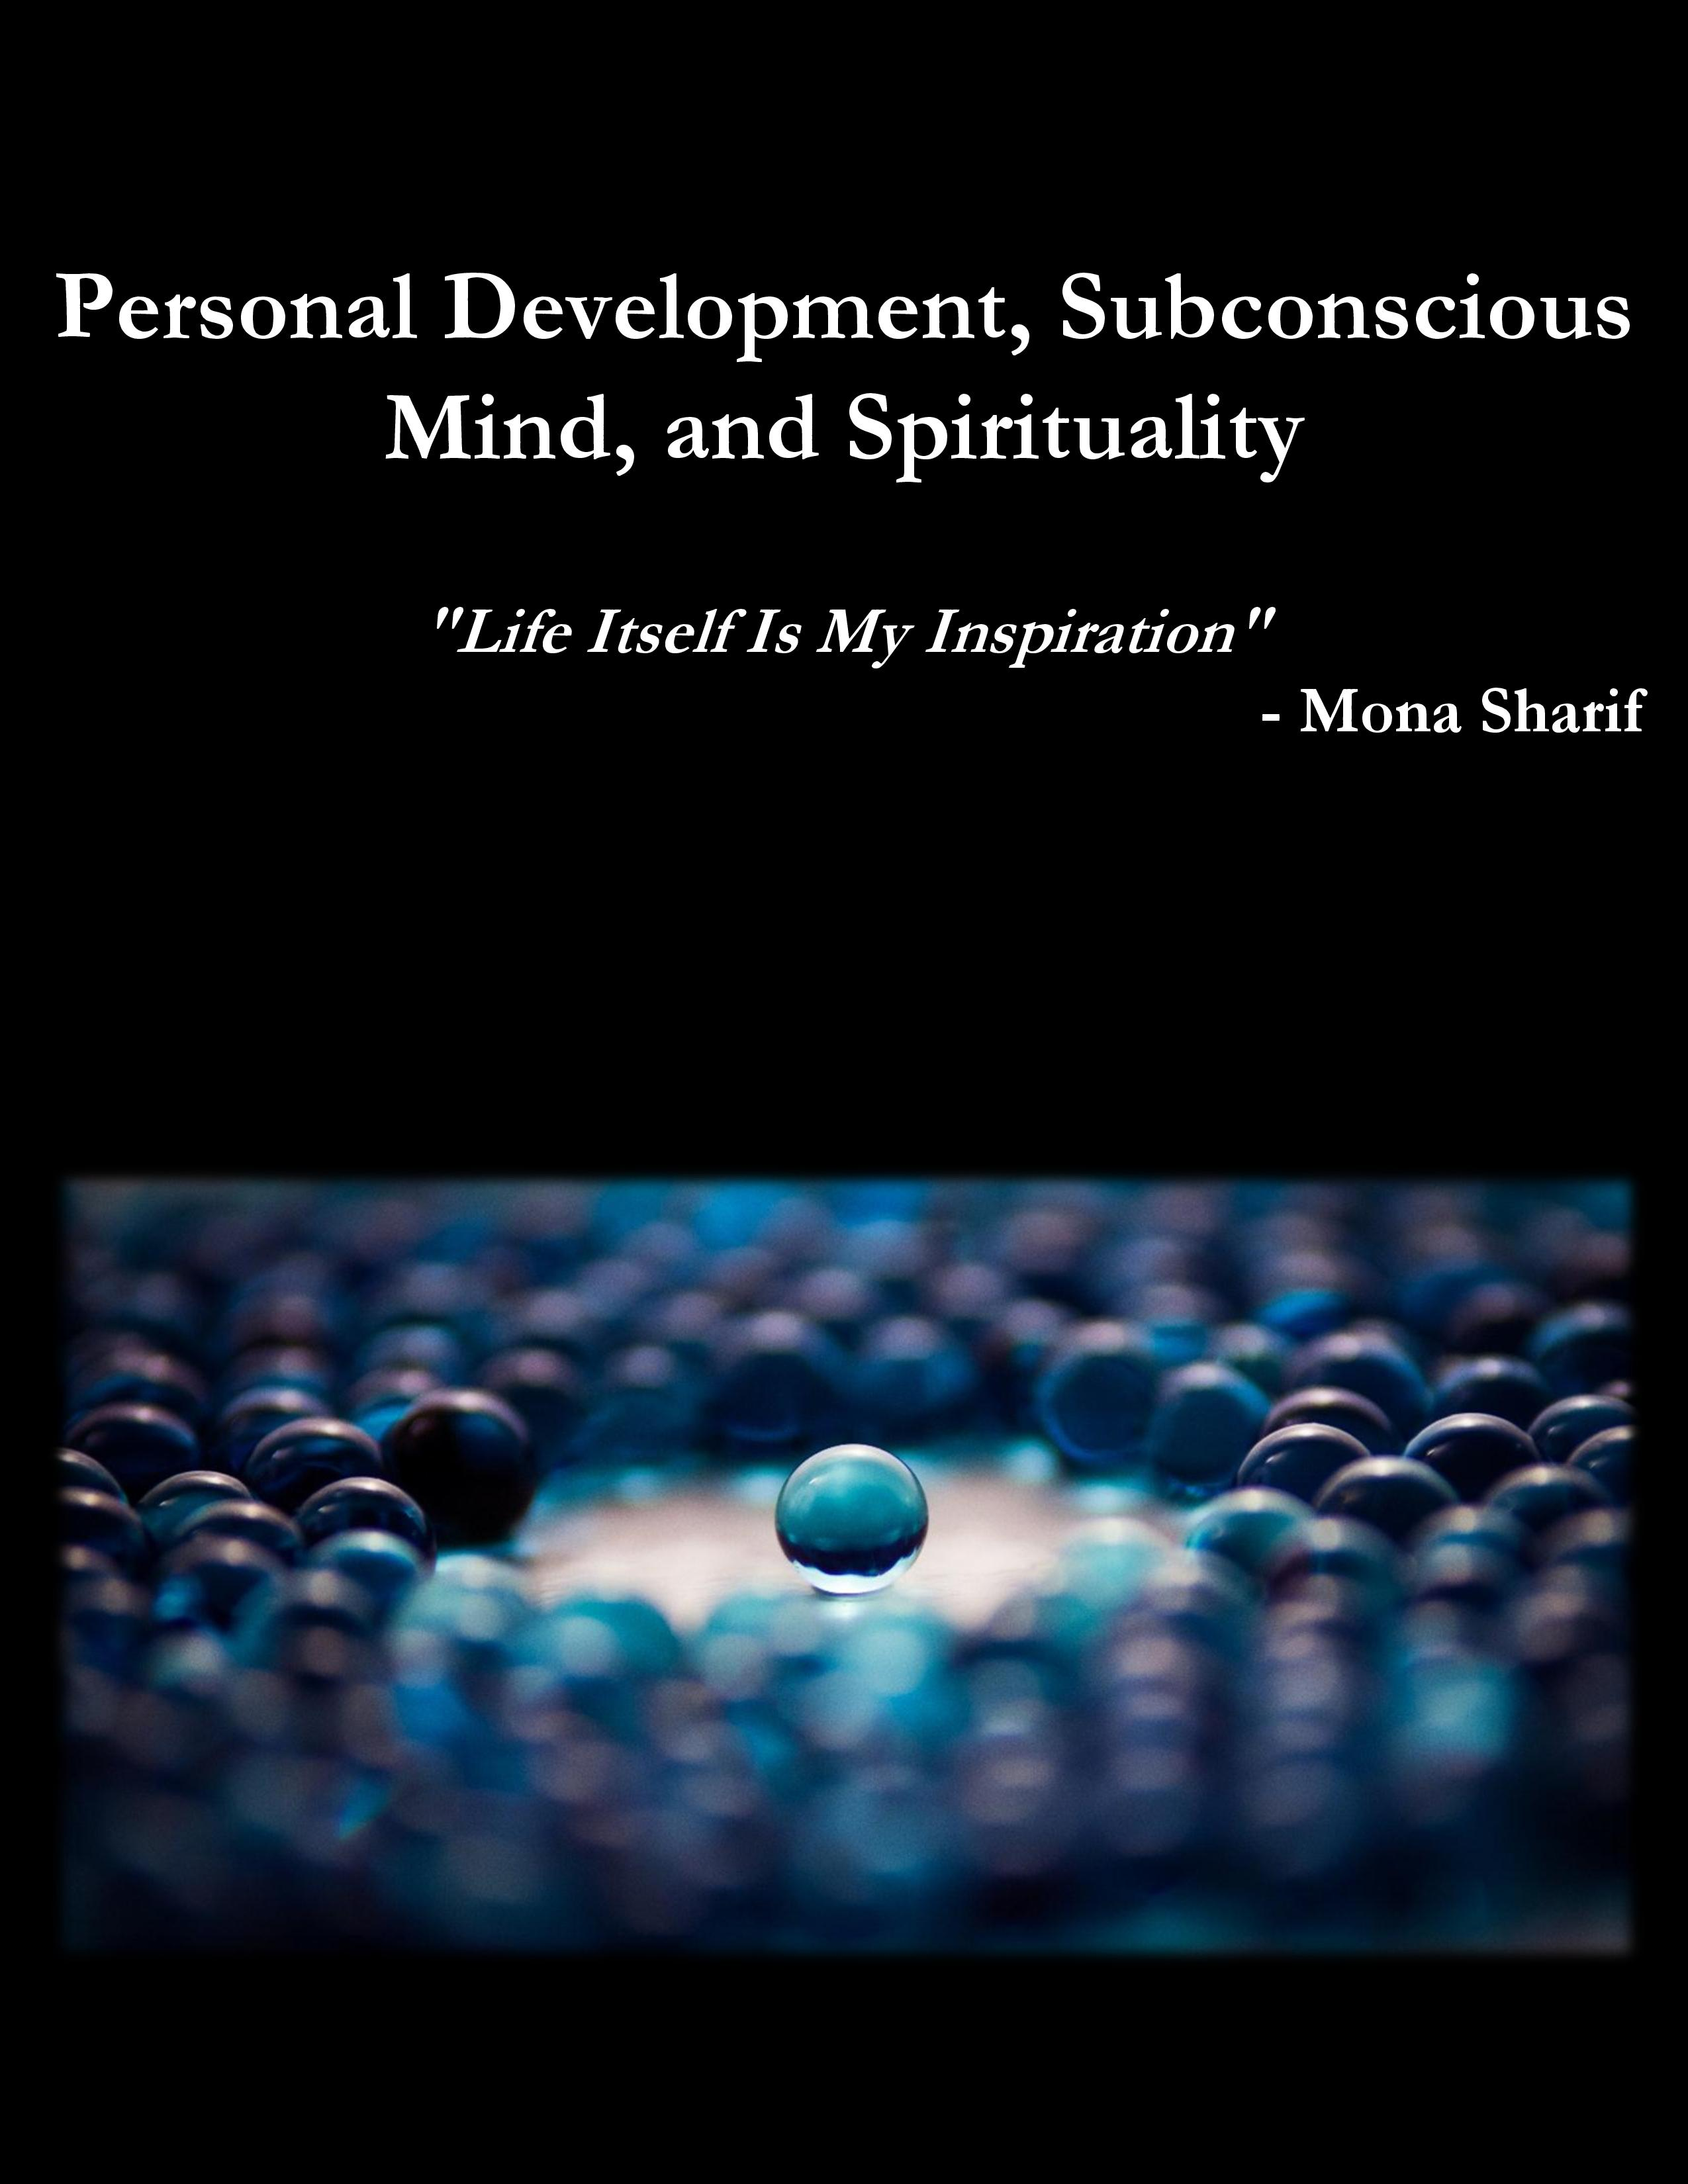 Personal Development, Subconscious Mind, and Spirituality: Life Itself Is My Inspiration